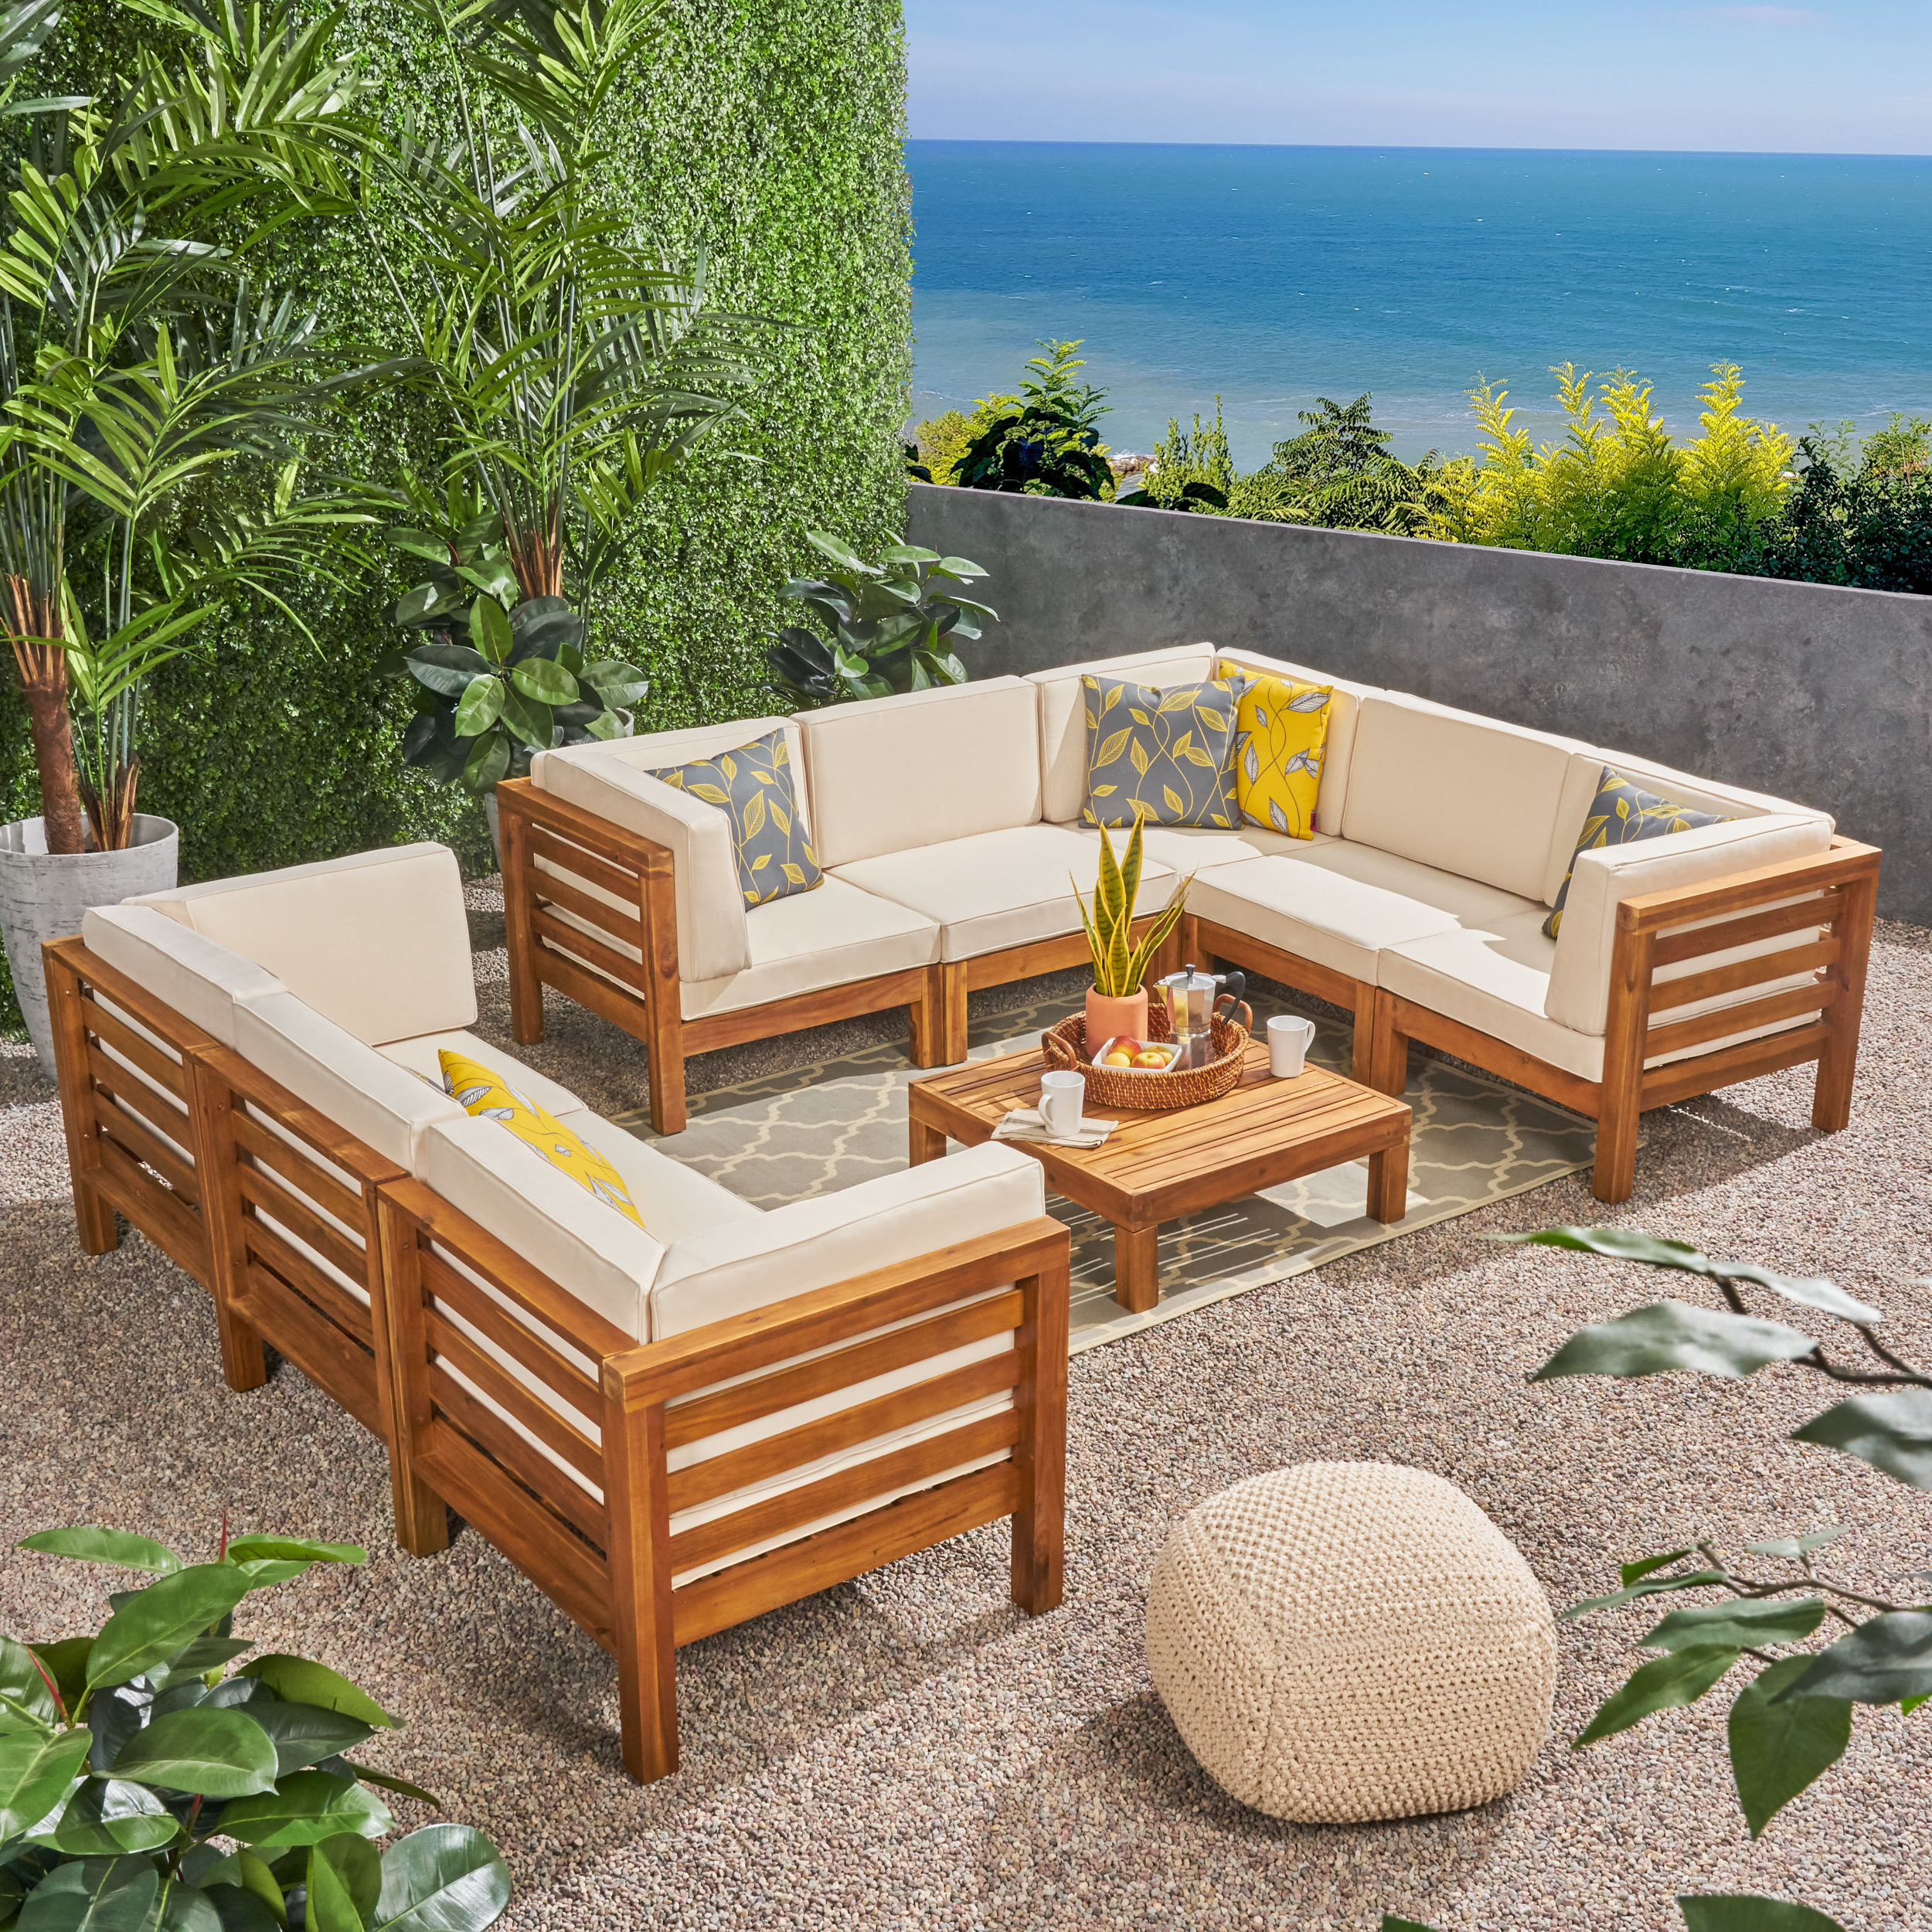 2019 Seaham Patio Sectionals With Cushions In Seaham 9 Piece Teak Sectional Seating Group With Cushions (View 2 of 20)